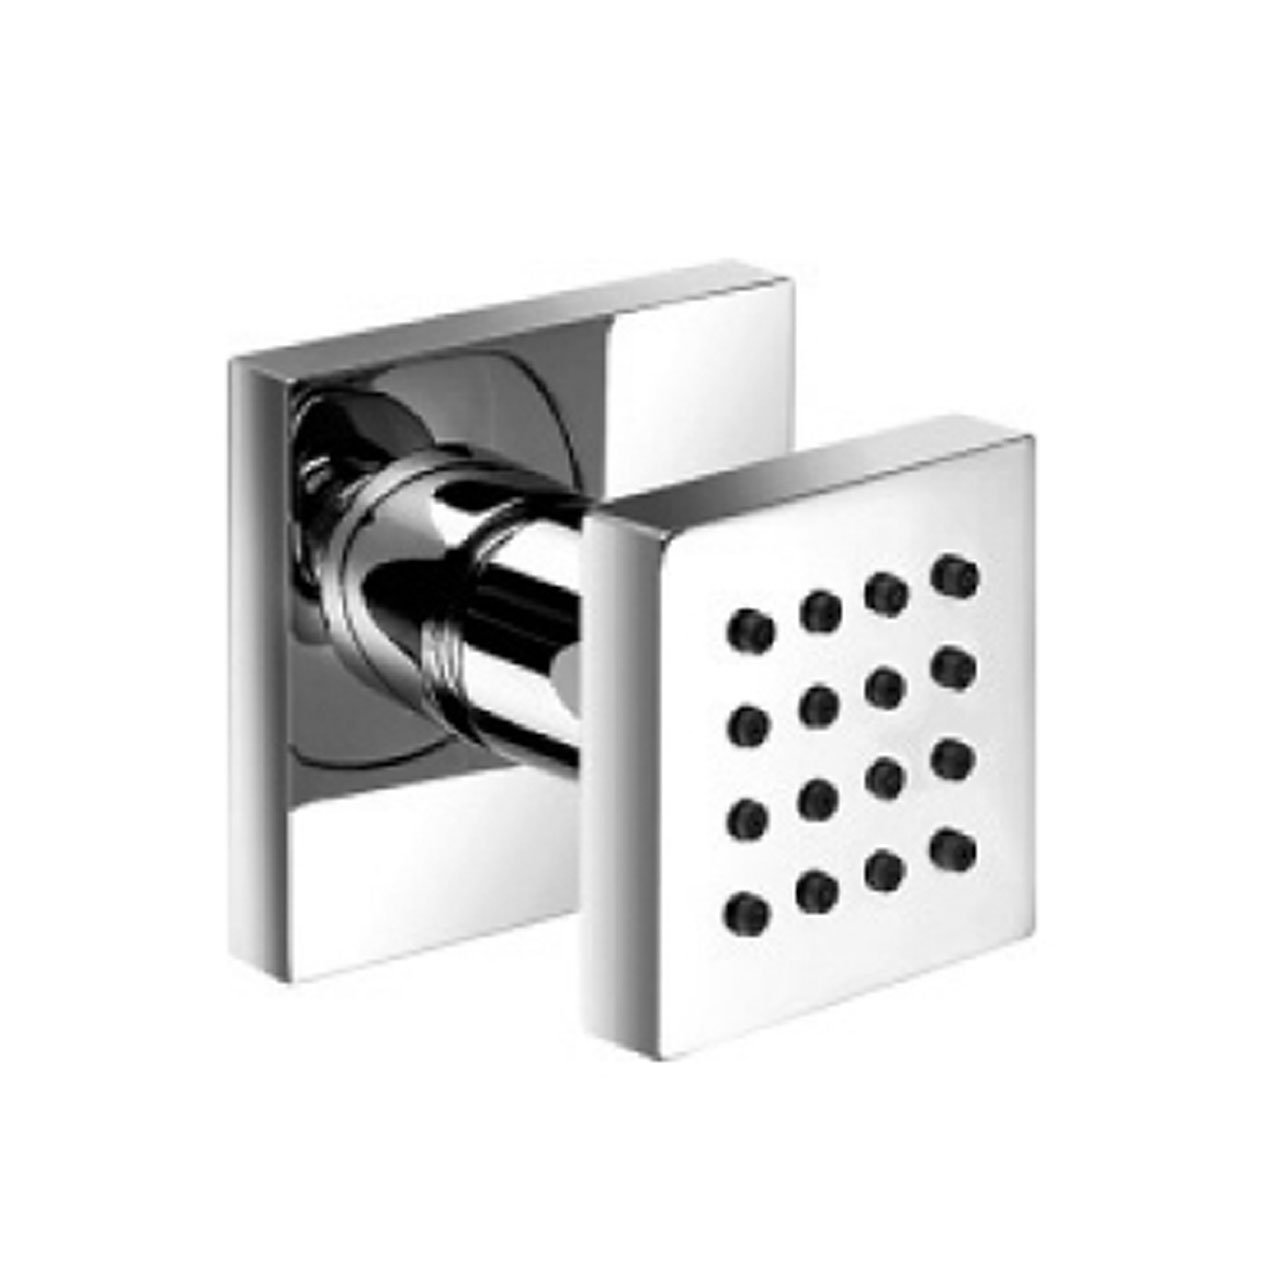 Isenberg 160.6402CP Universal Fixtures Body Jet 1/2'', 160.6402, Polished Chrome